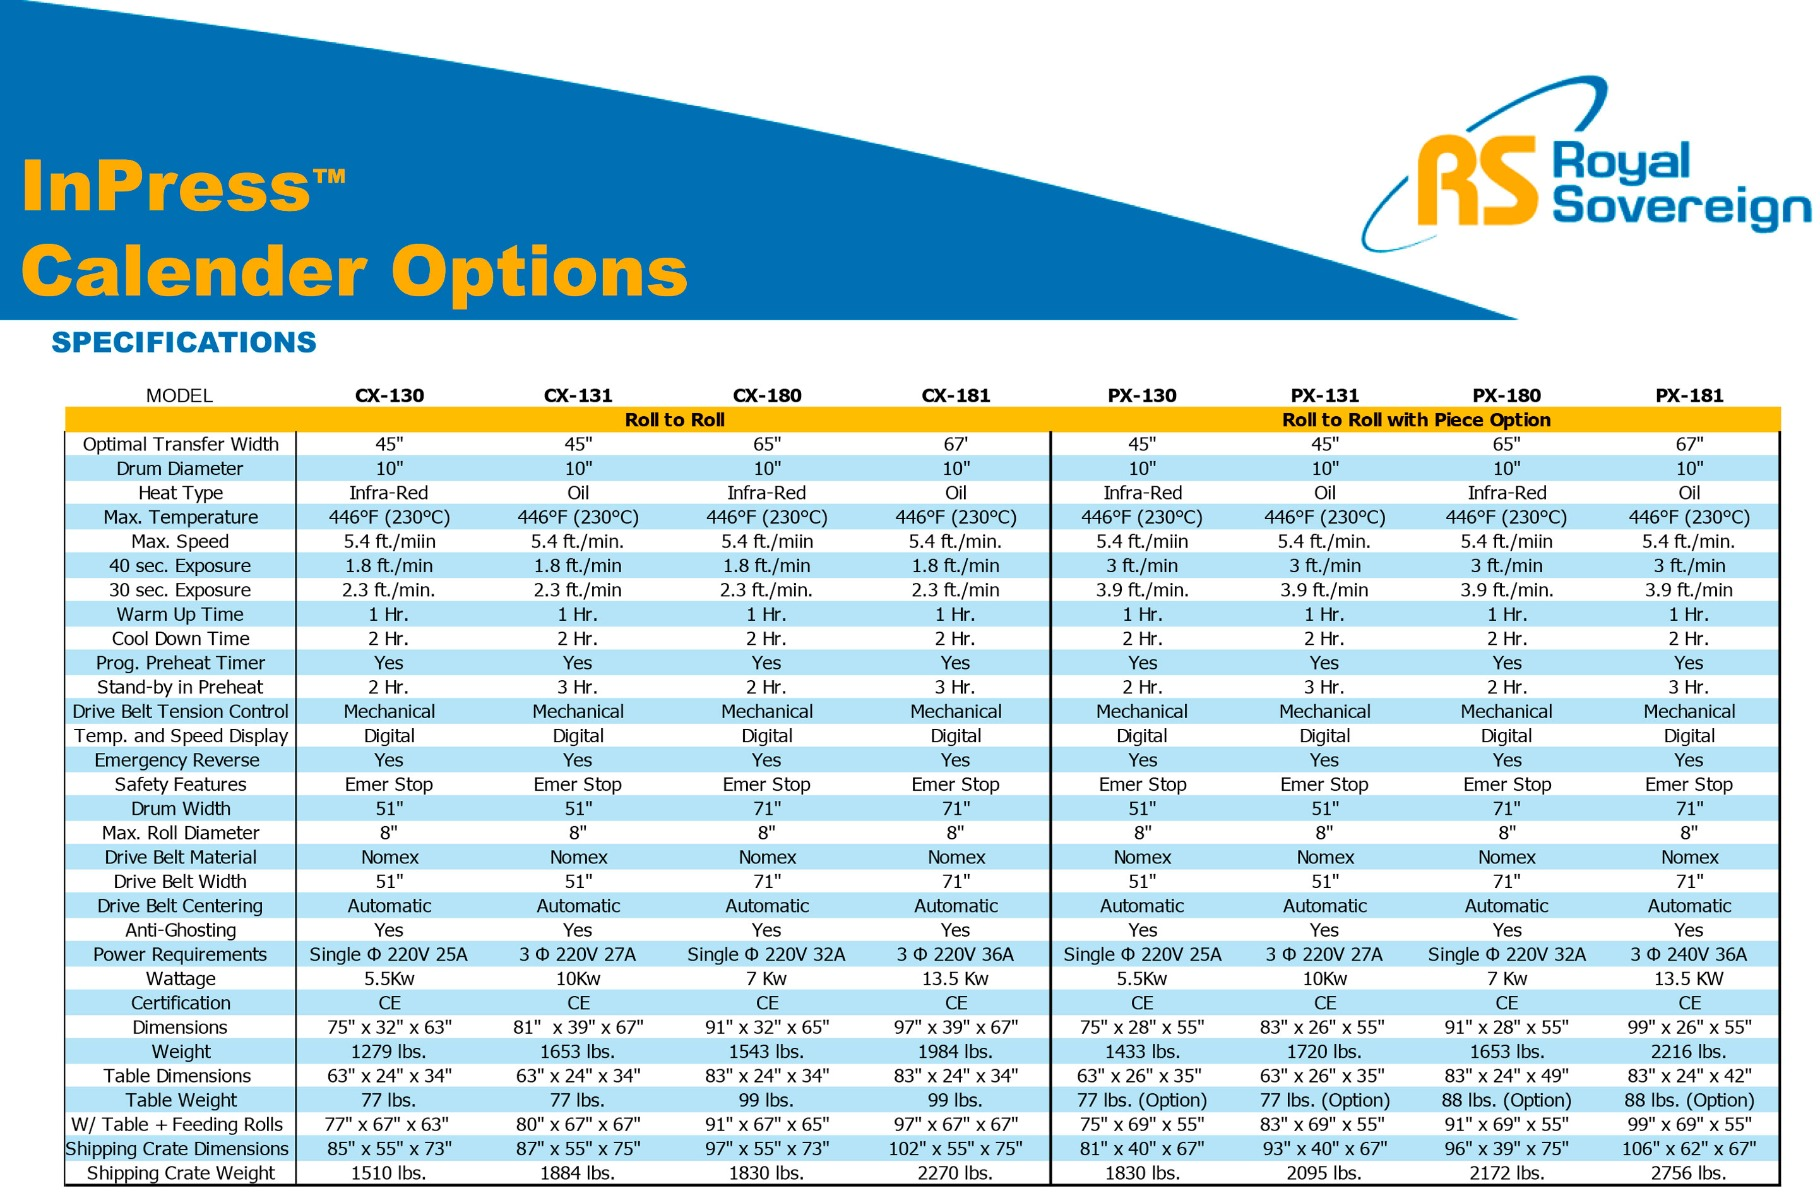 royal sovereign px-181f calender heat transfer press comparison of features to other presses